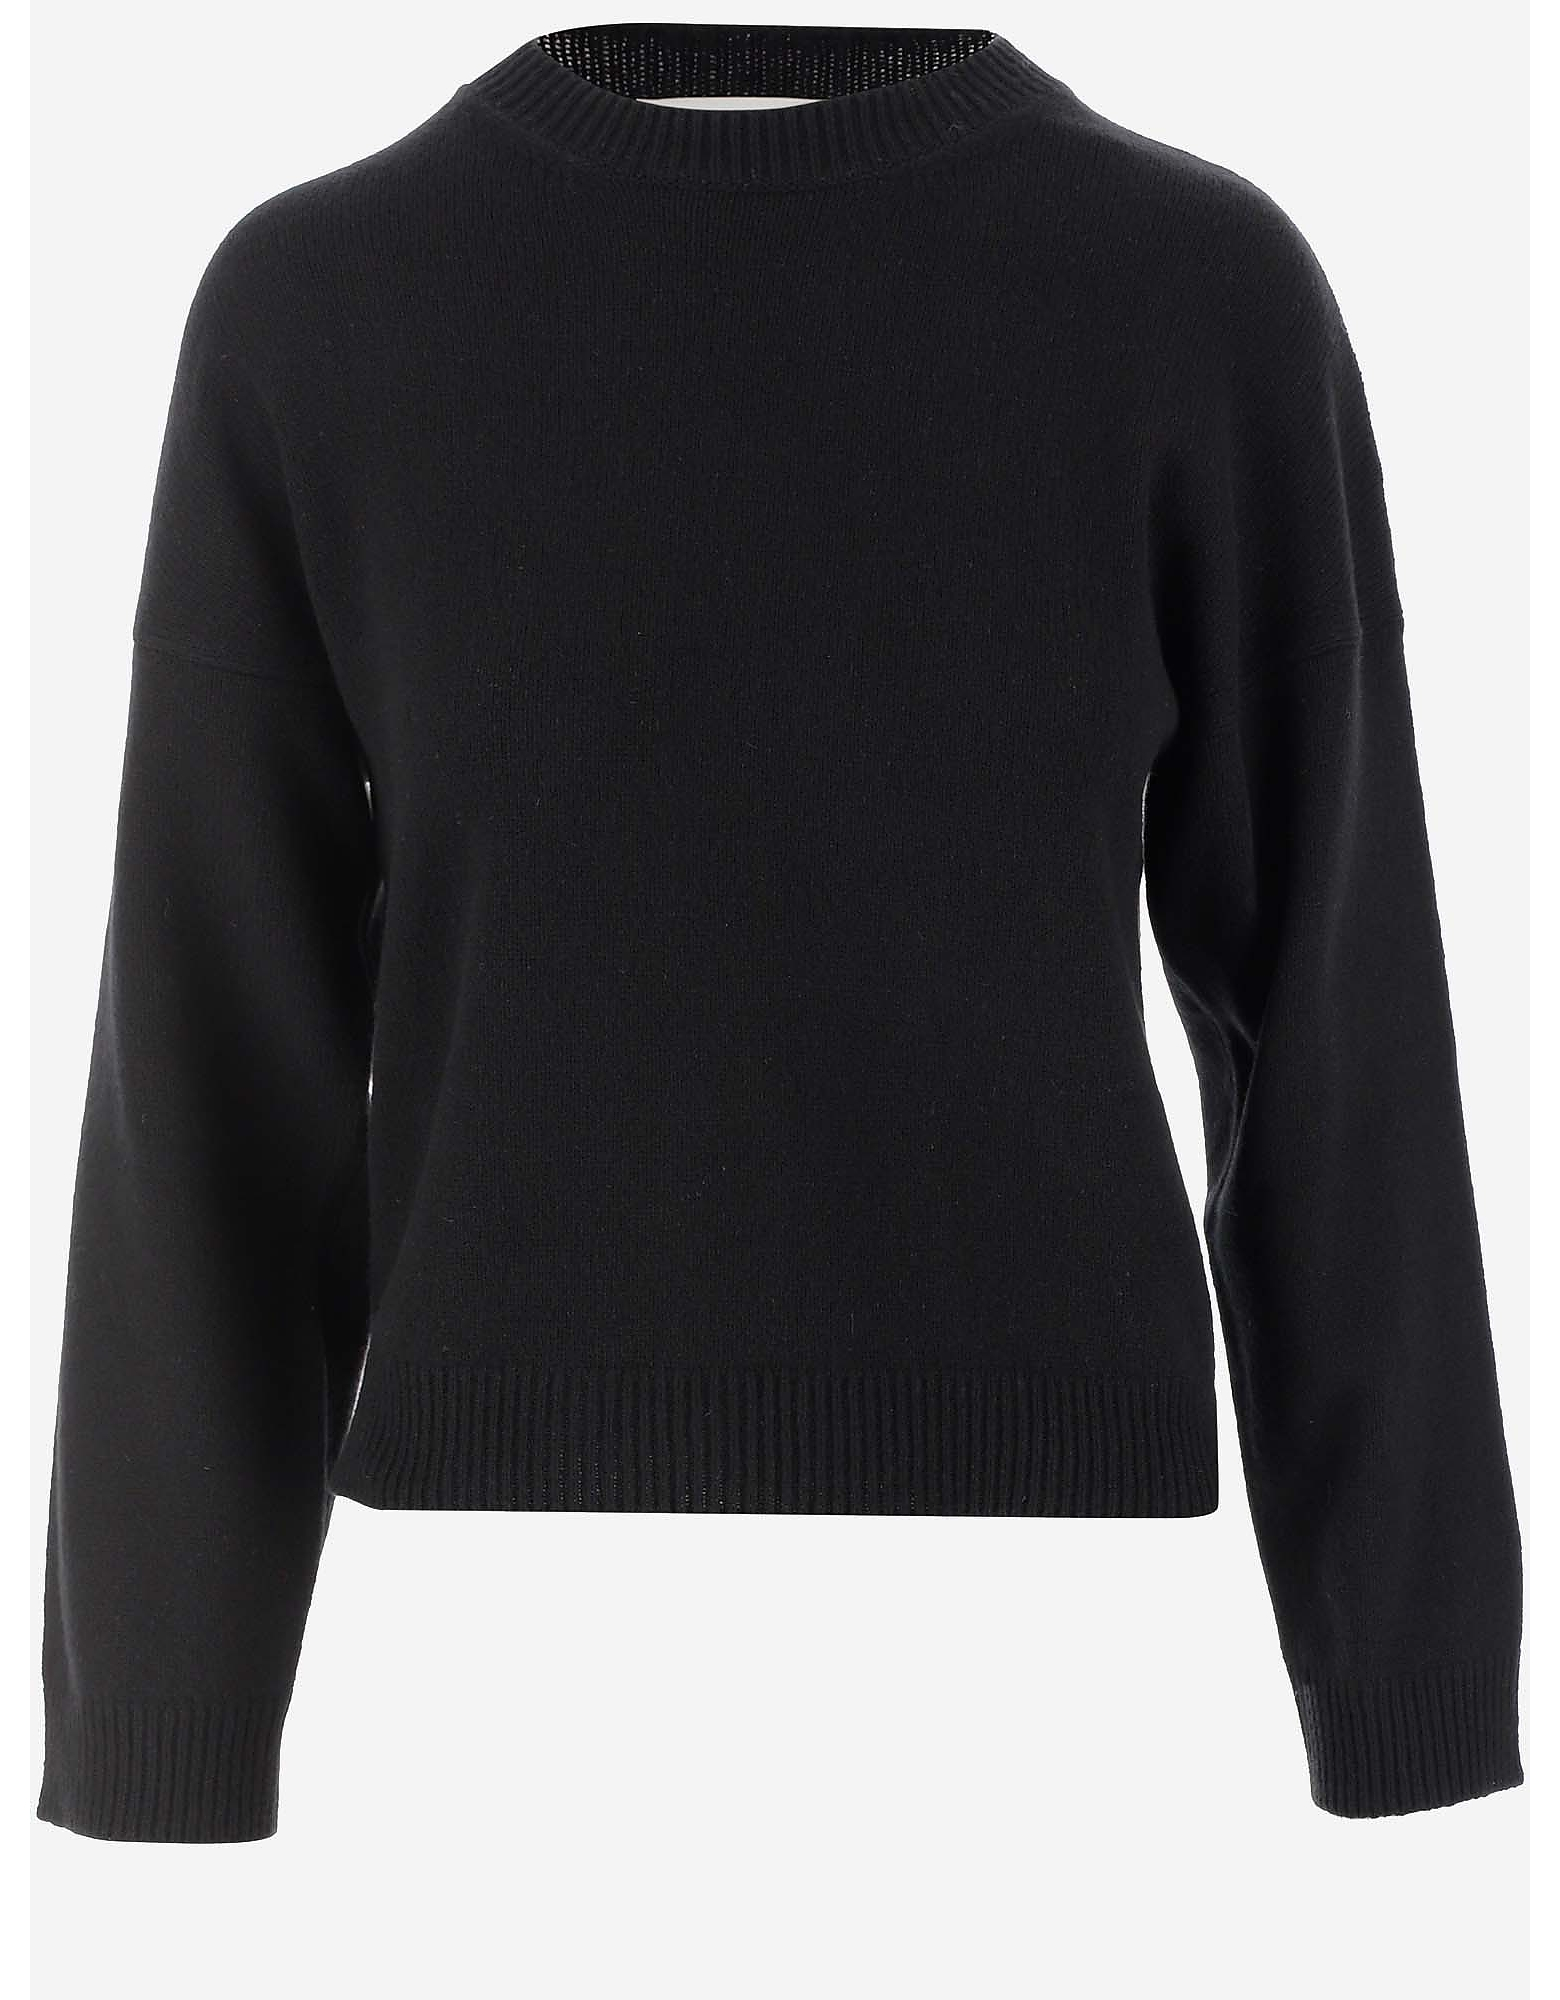 Moschino Designer Knitwear, Black Cashmere Women's Sweater w/Oversized Logo